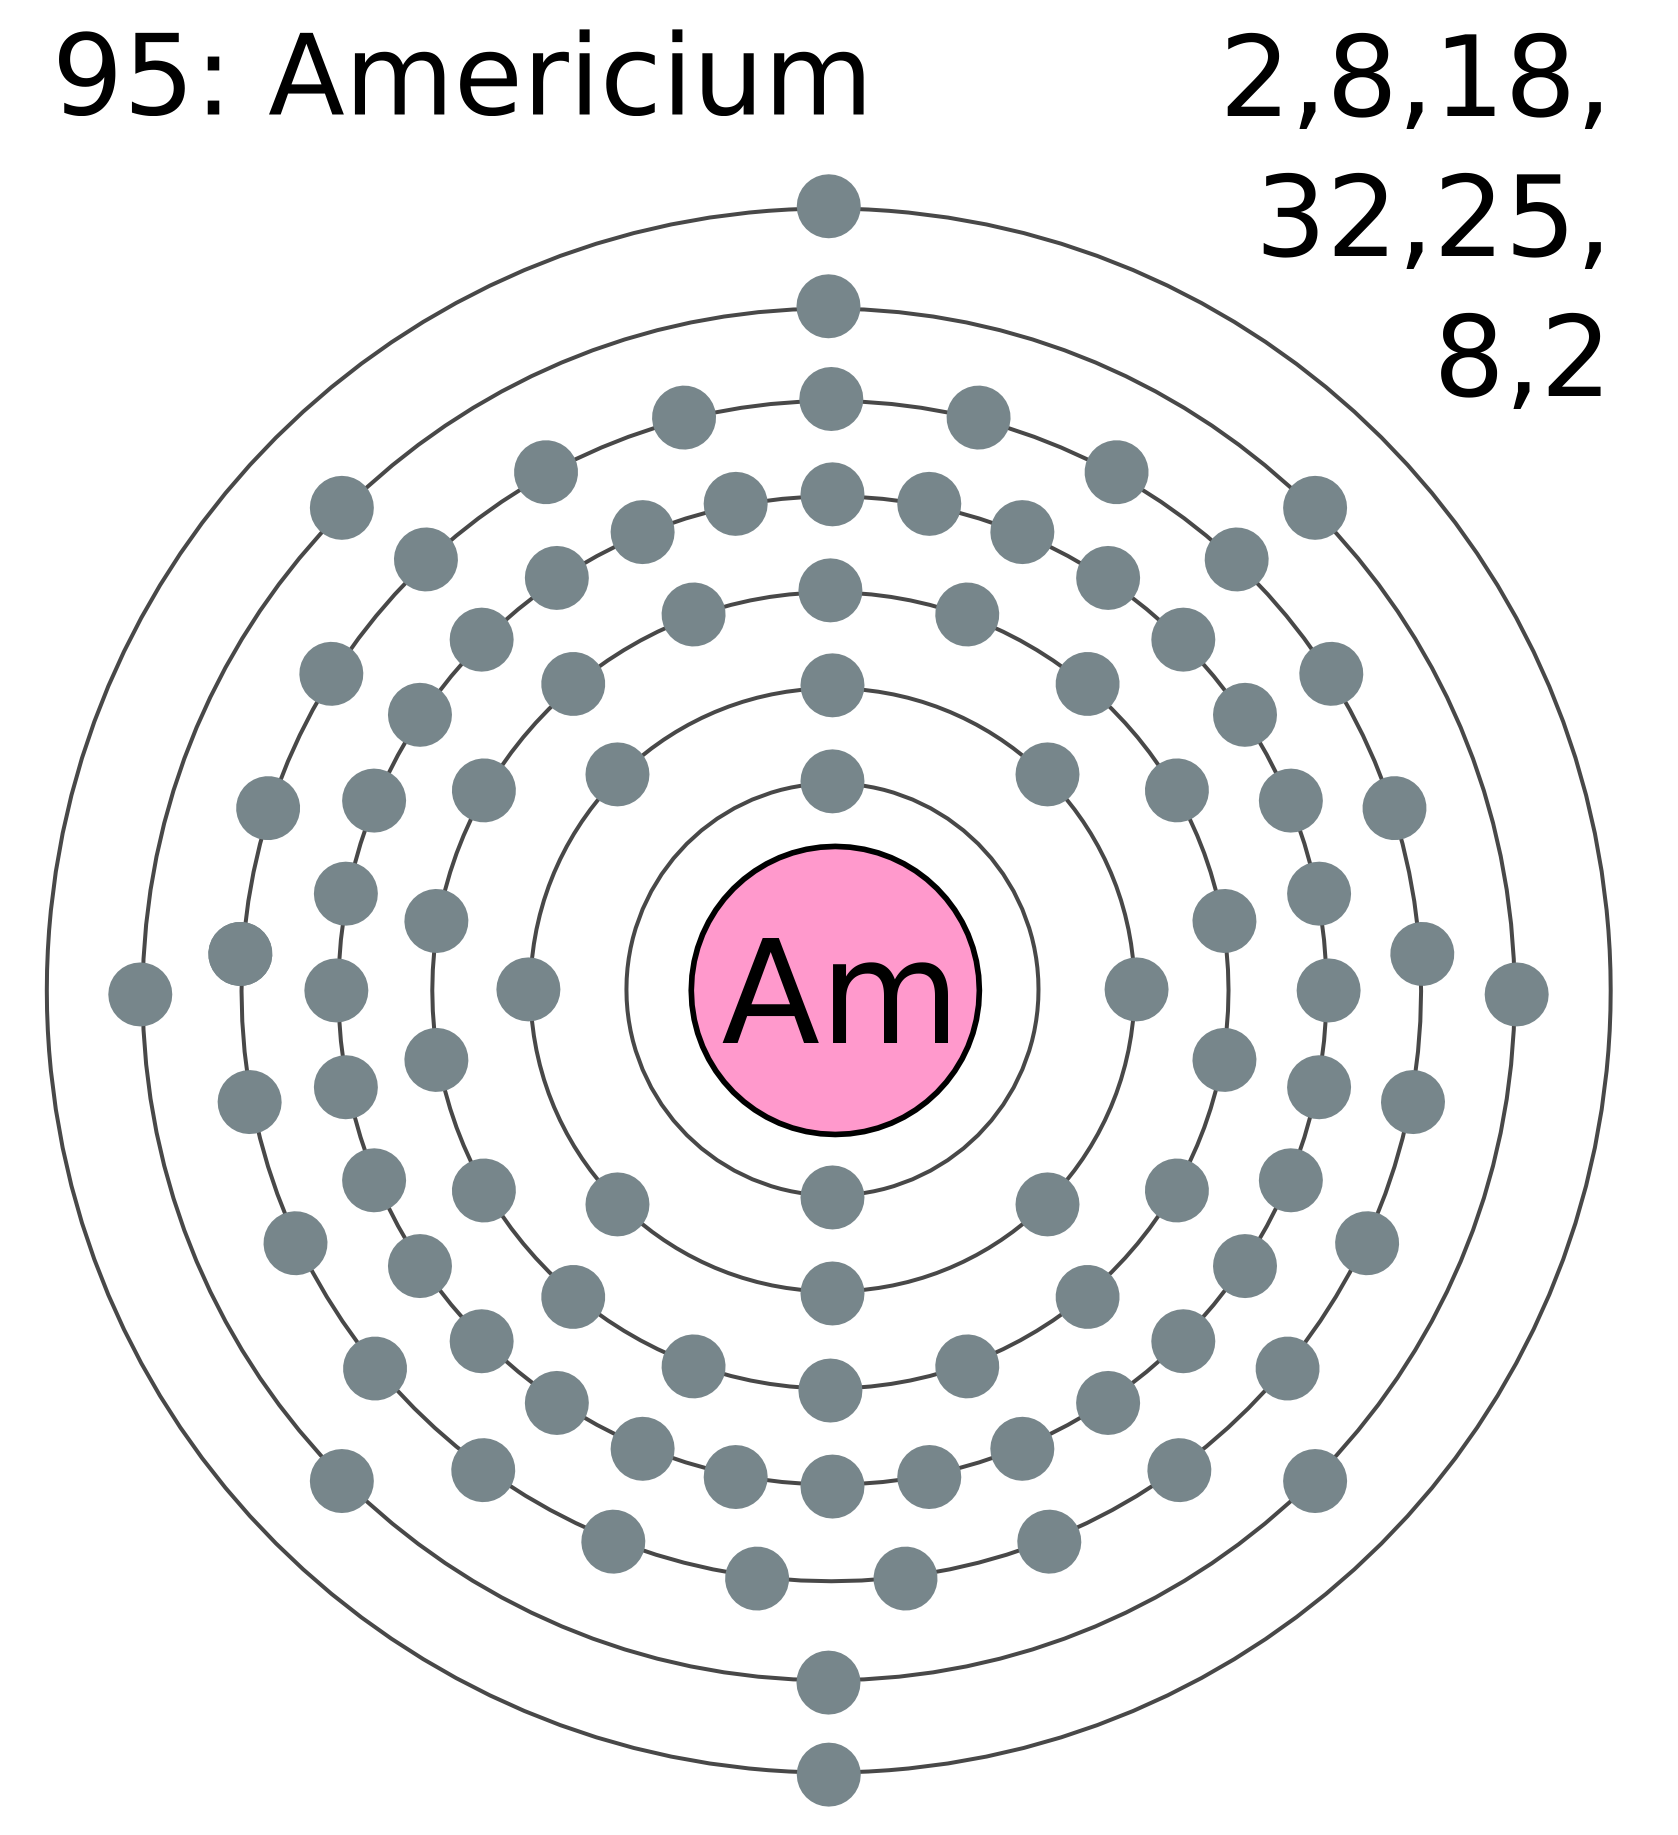 Electron_shell_095_americium